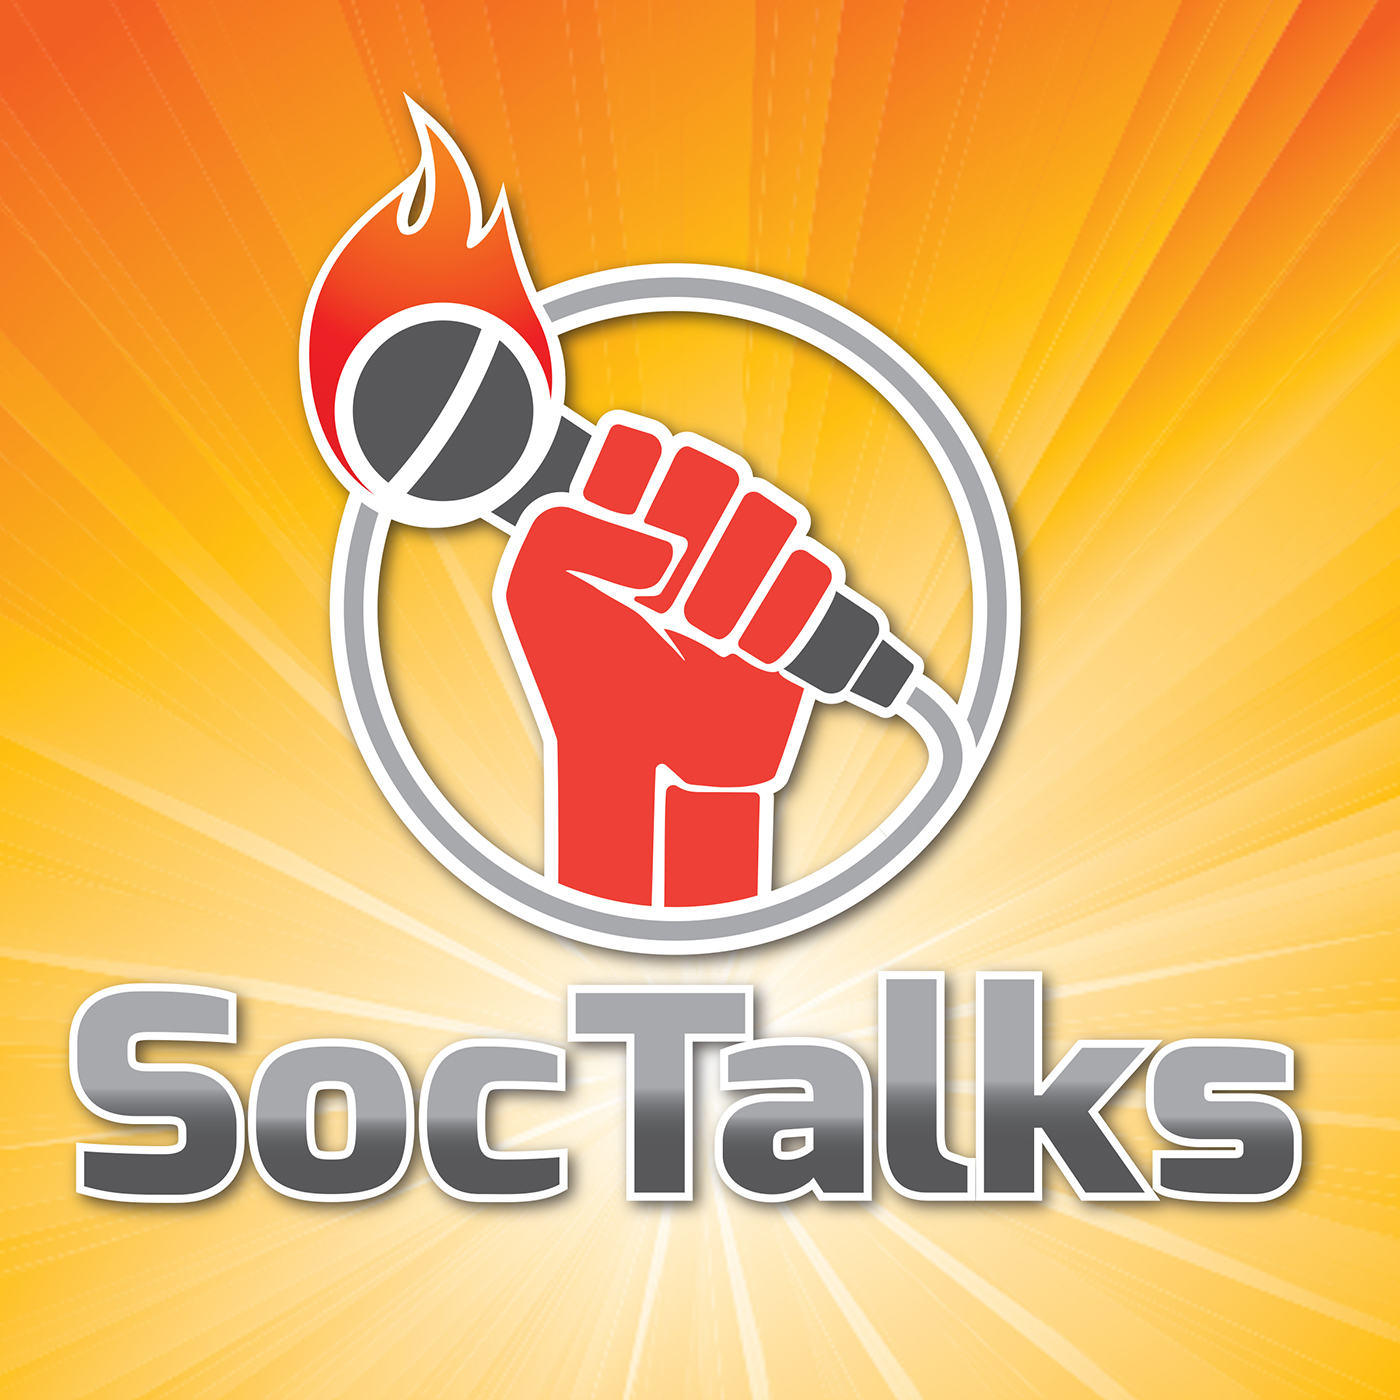 SocTalks Episode 026 Season 2 show art